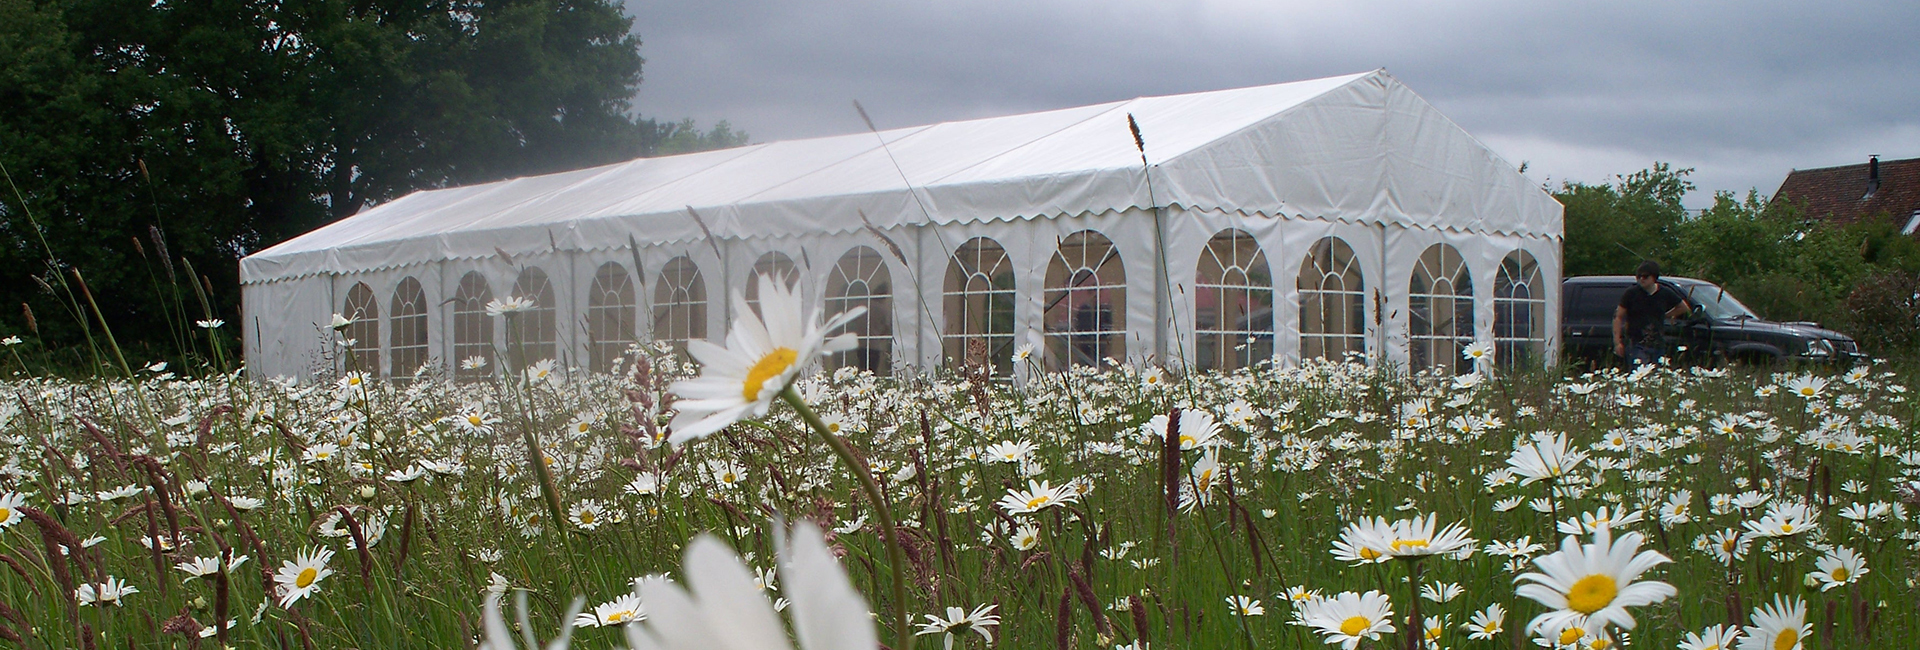 marquee in feild of flowers rent a party tent suffolk and essex